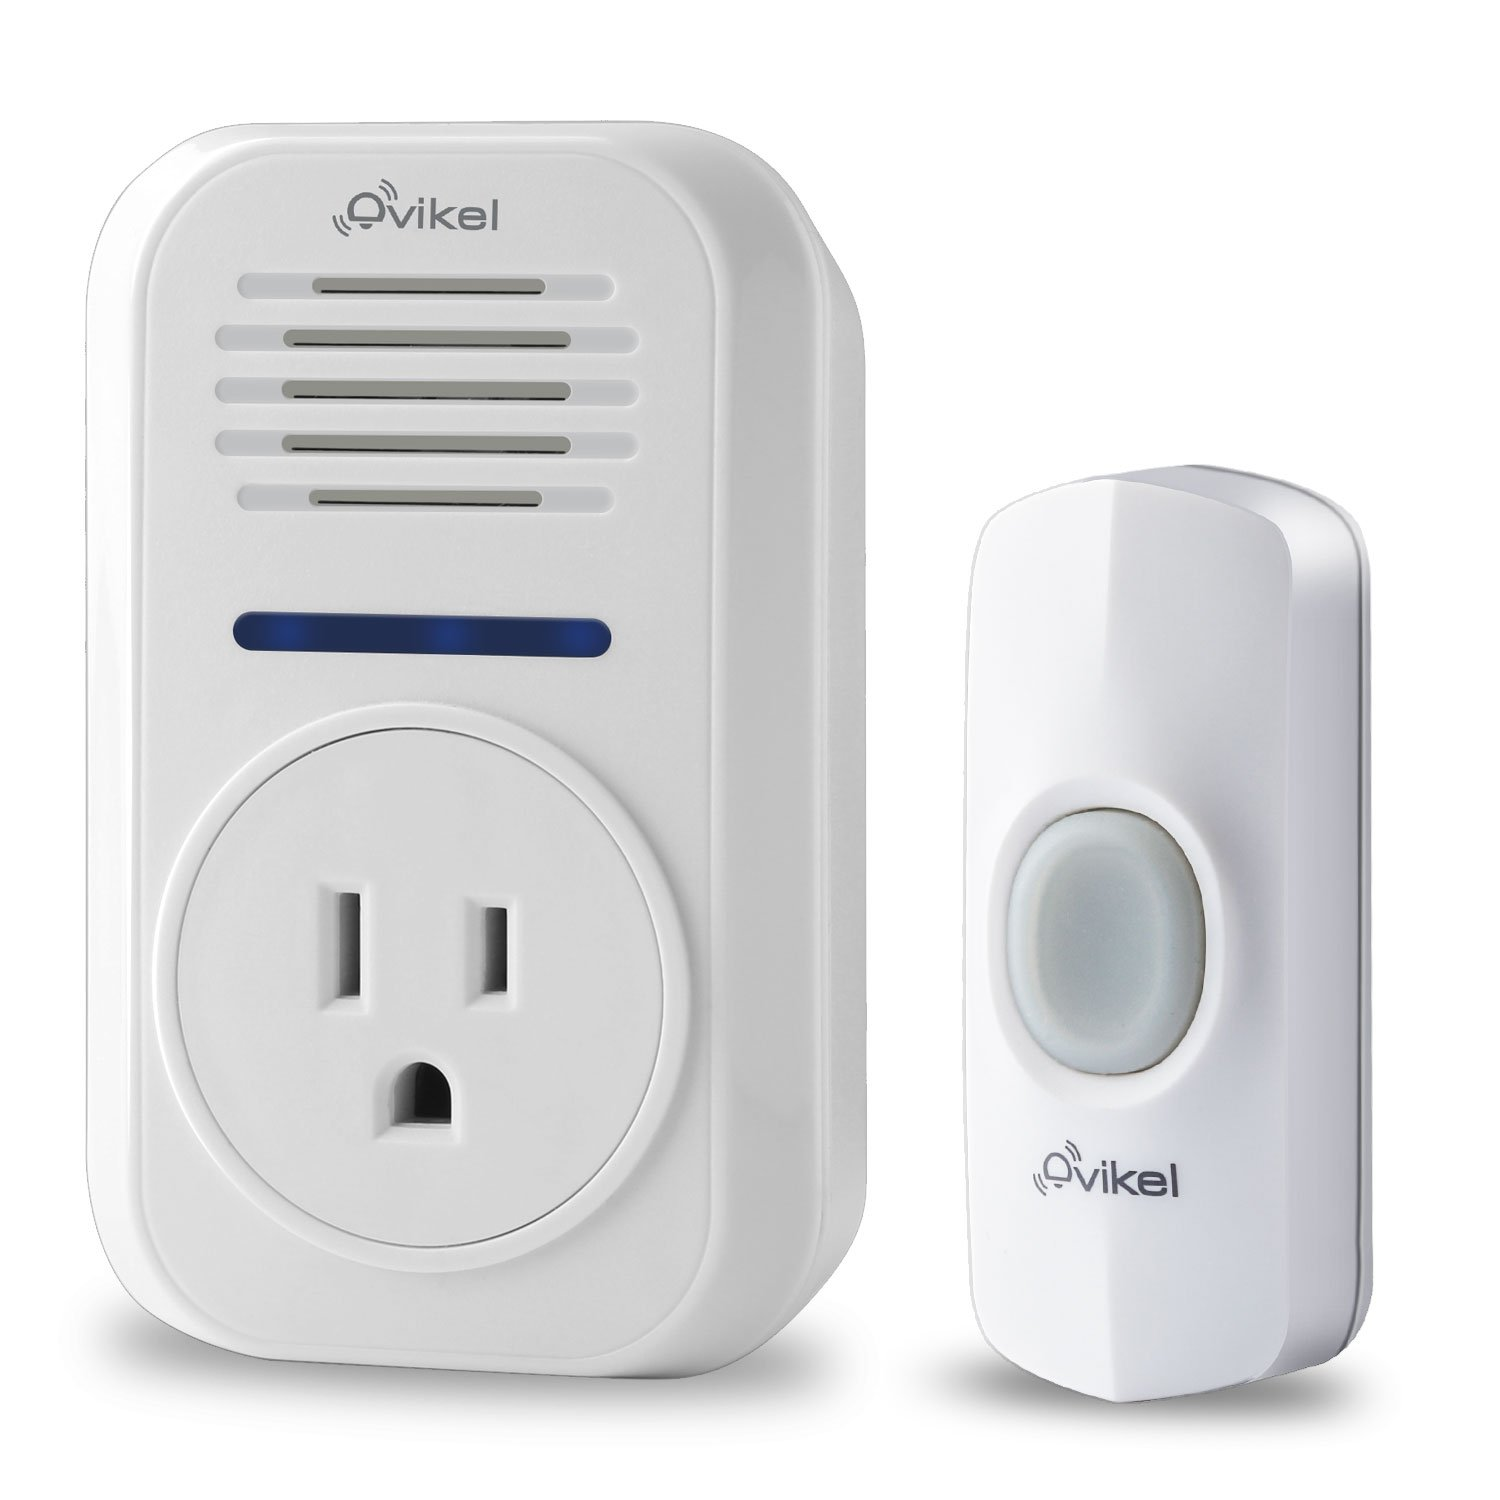 Wireless Plug-in Vikel Doorbell Chime With Outlet, 500 Feet Operating Range, 4 Levels Volume, 32 Melodies to Choose, IP44 Bell Push, Battery push button and AC Receiver, White, Wireless Doorbell with